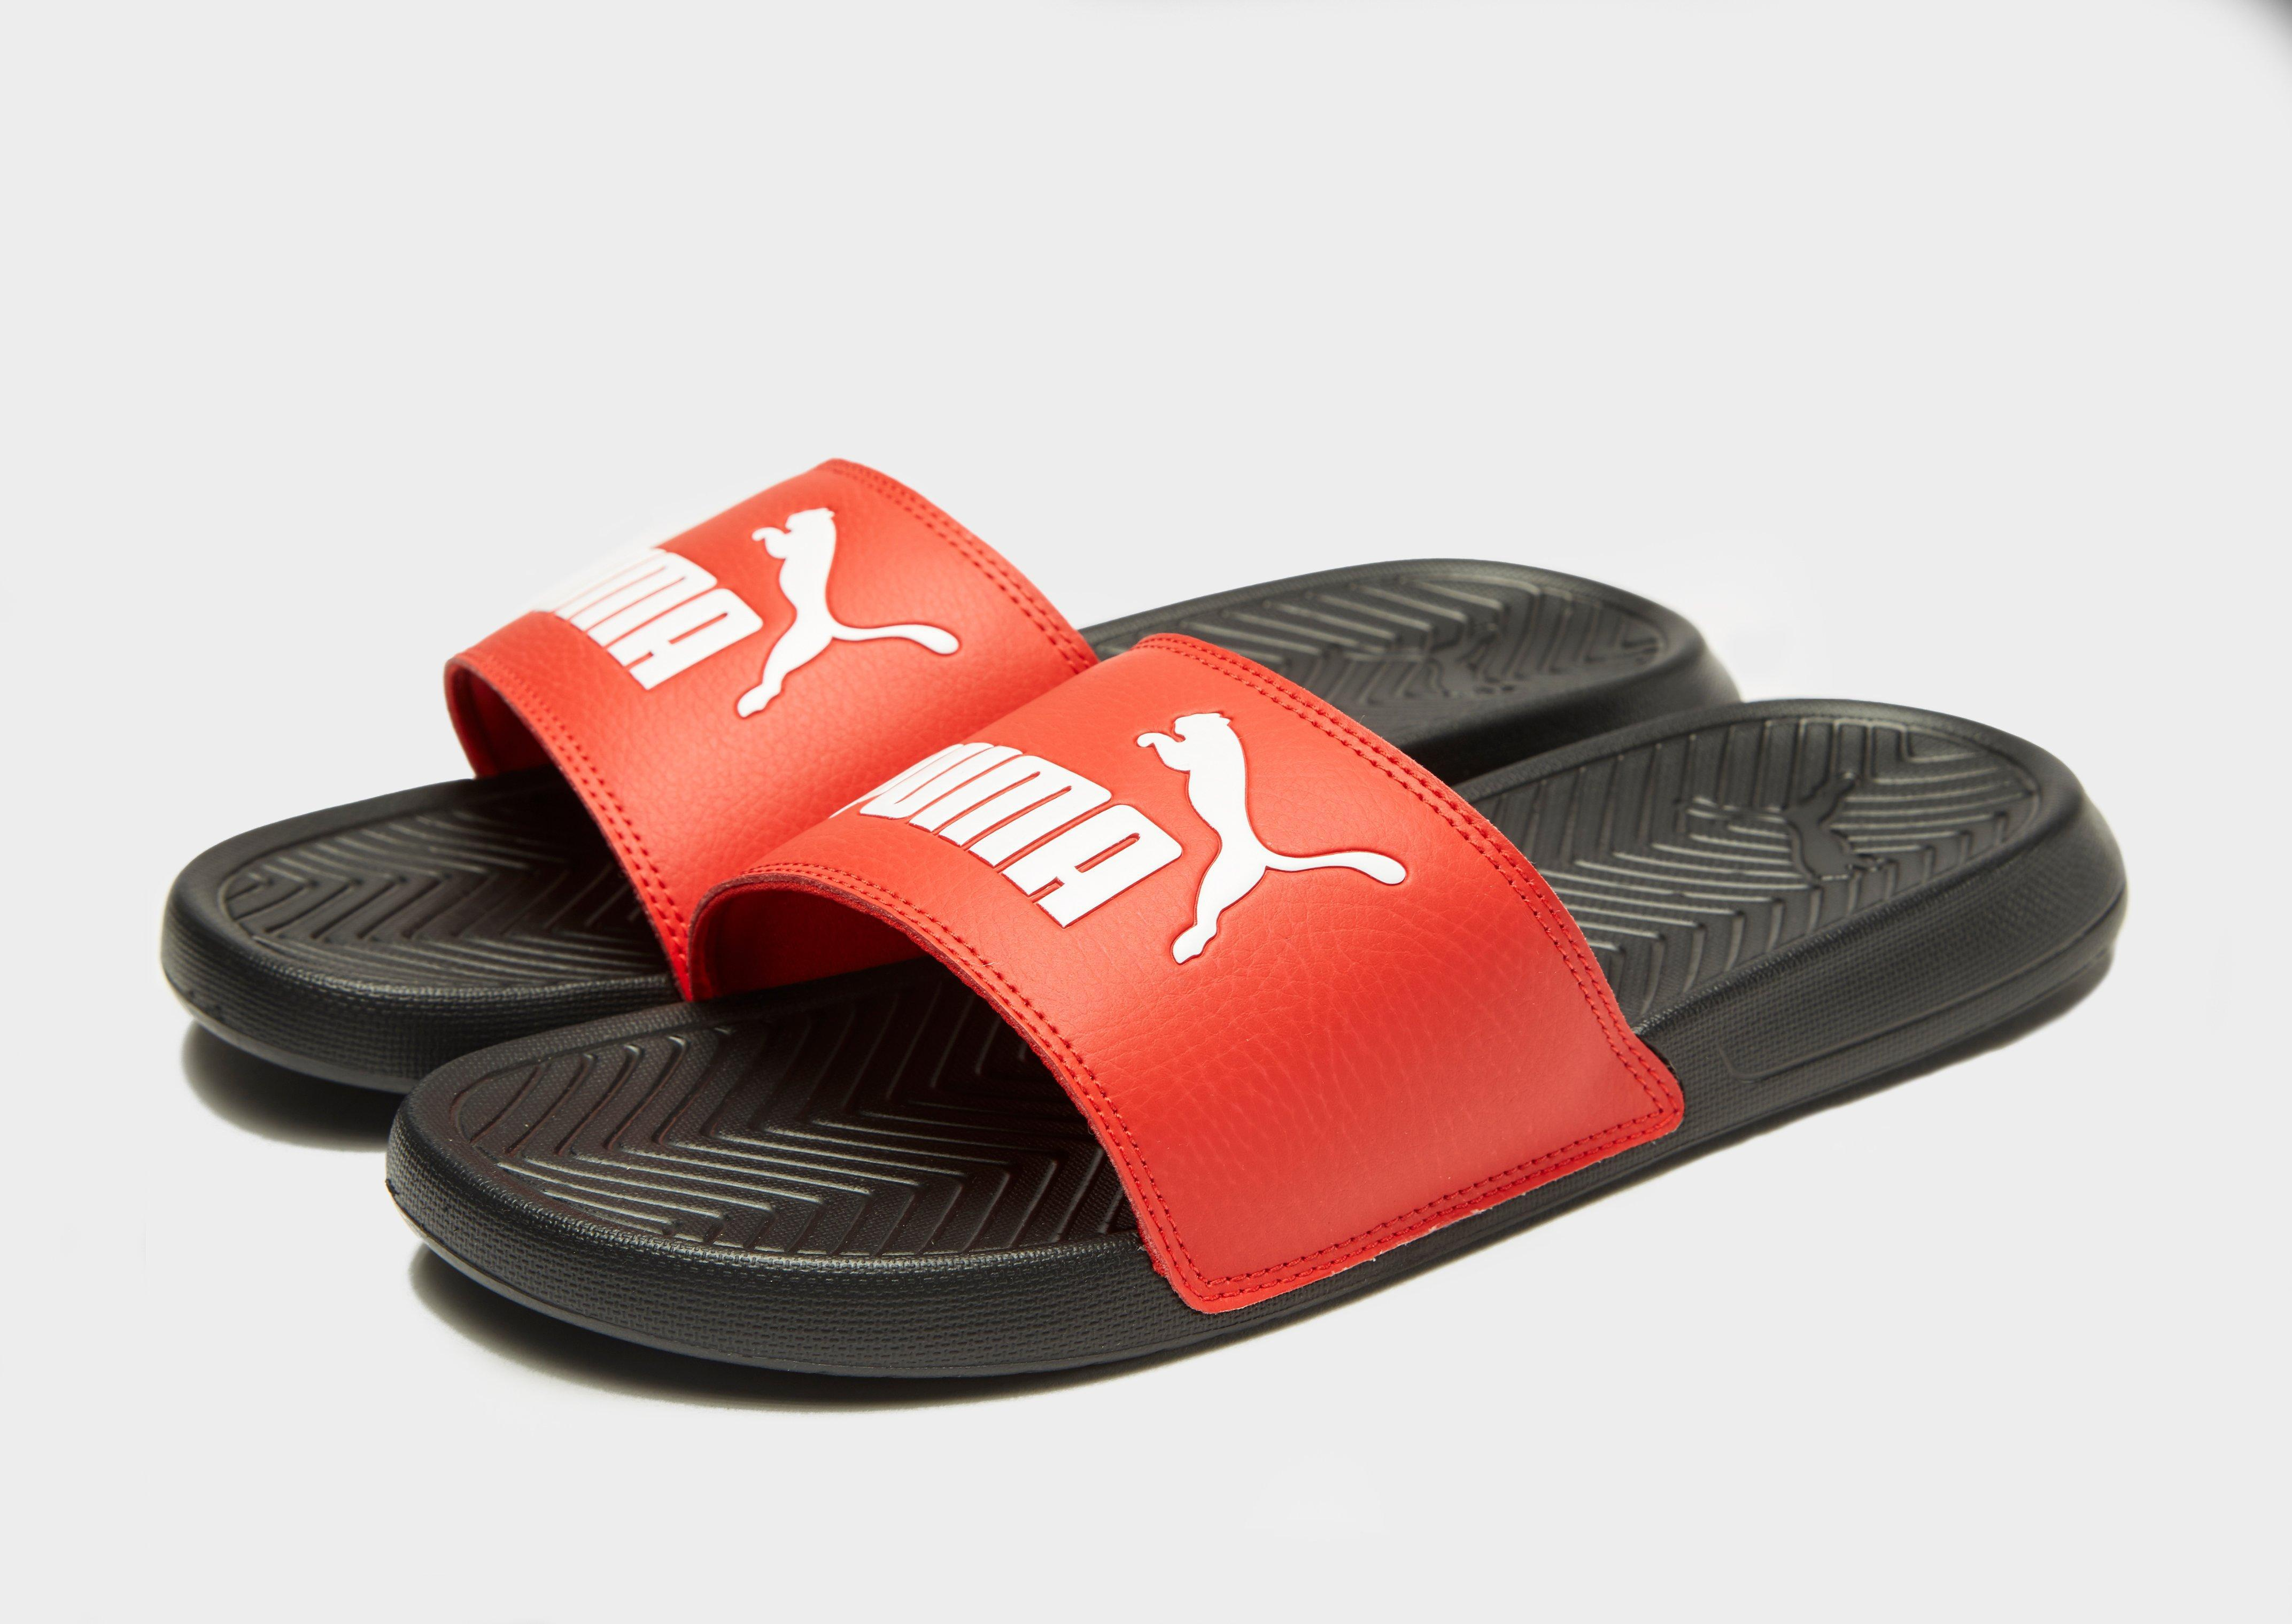 8a0e431ef6b PUMA Popcat Slides in Red for Men - Lyst